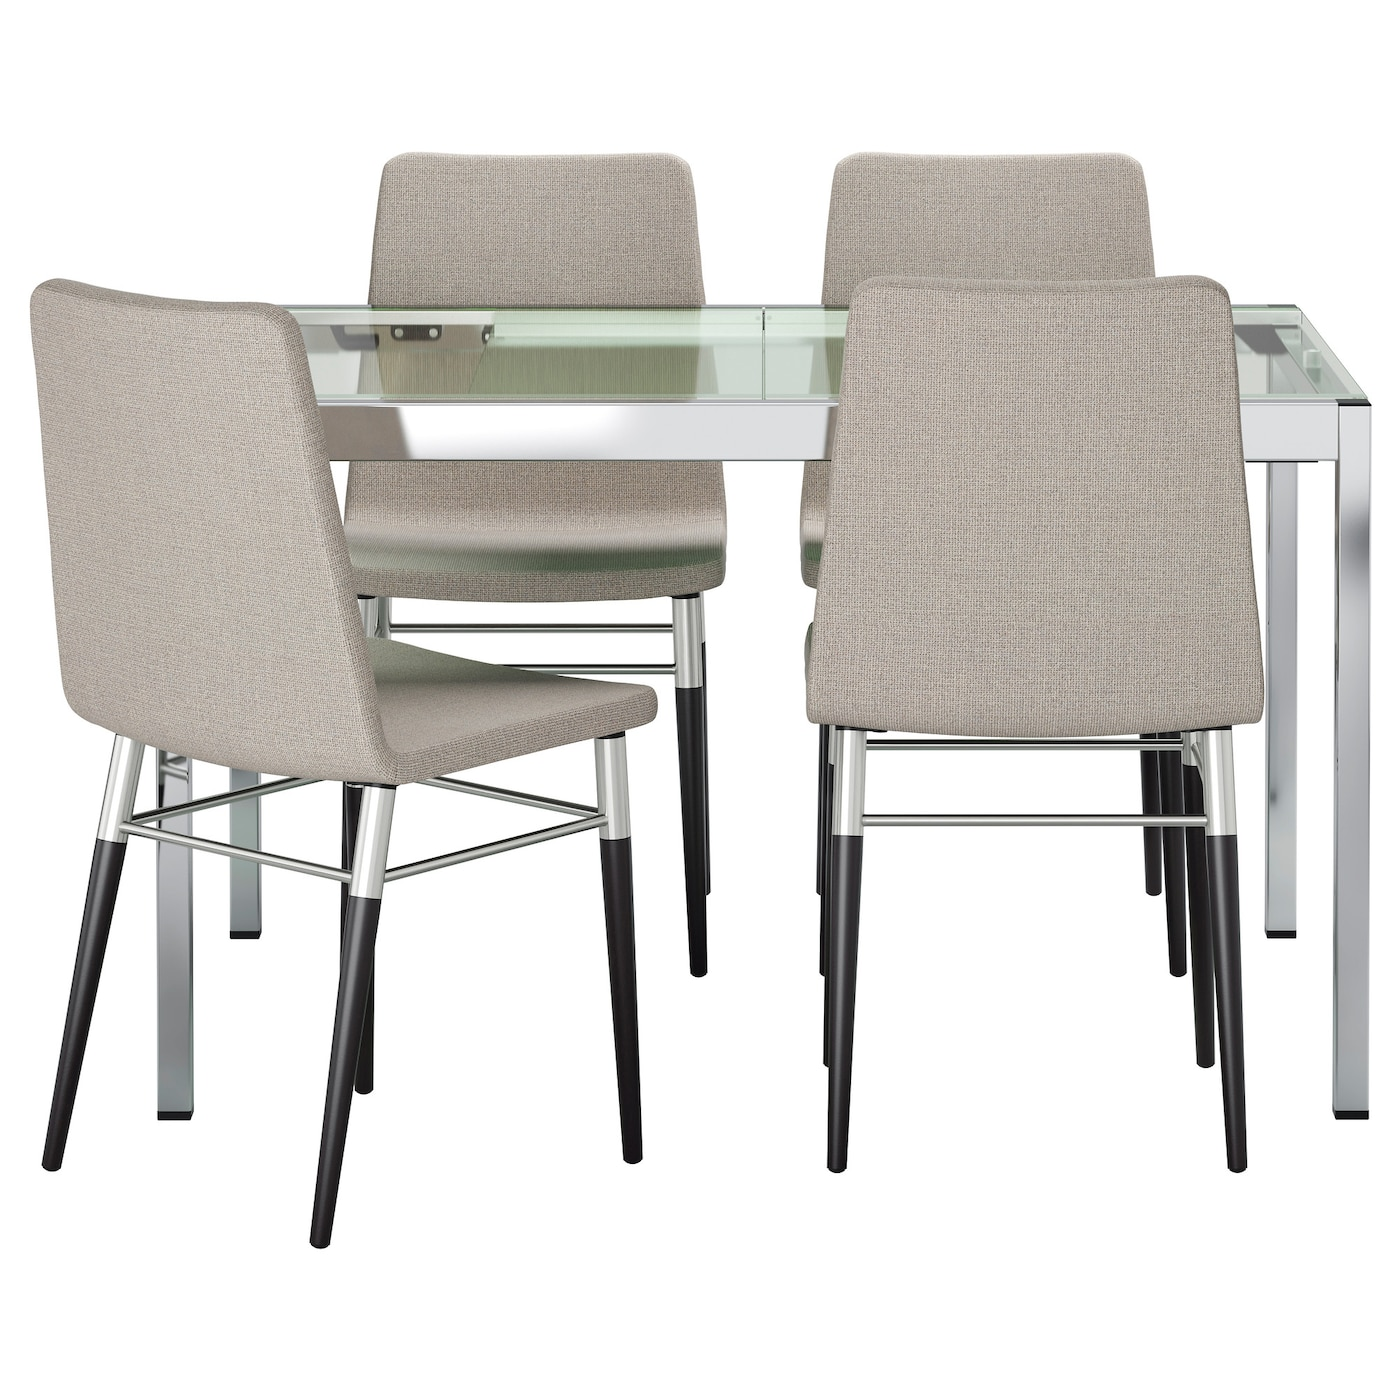 Preben glivarp table and 4 chairs transparent ten light for Table ikea 4 99